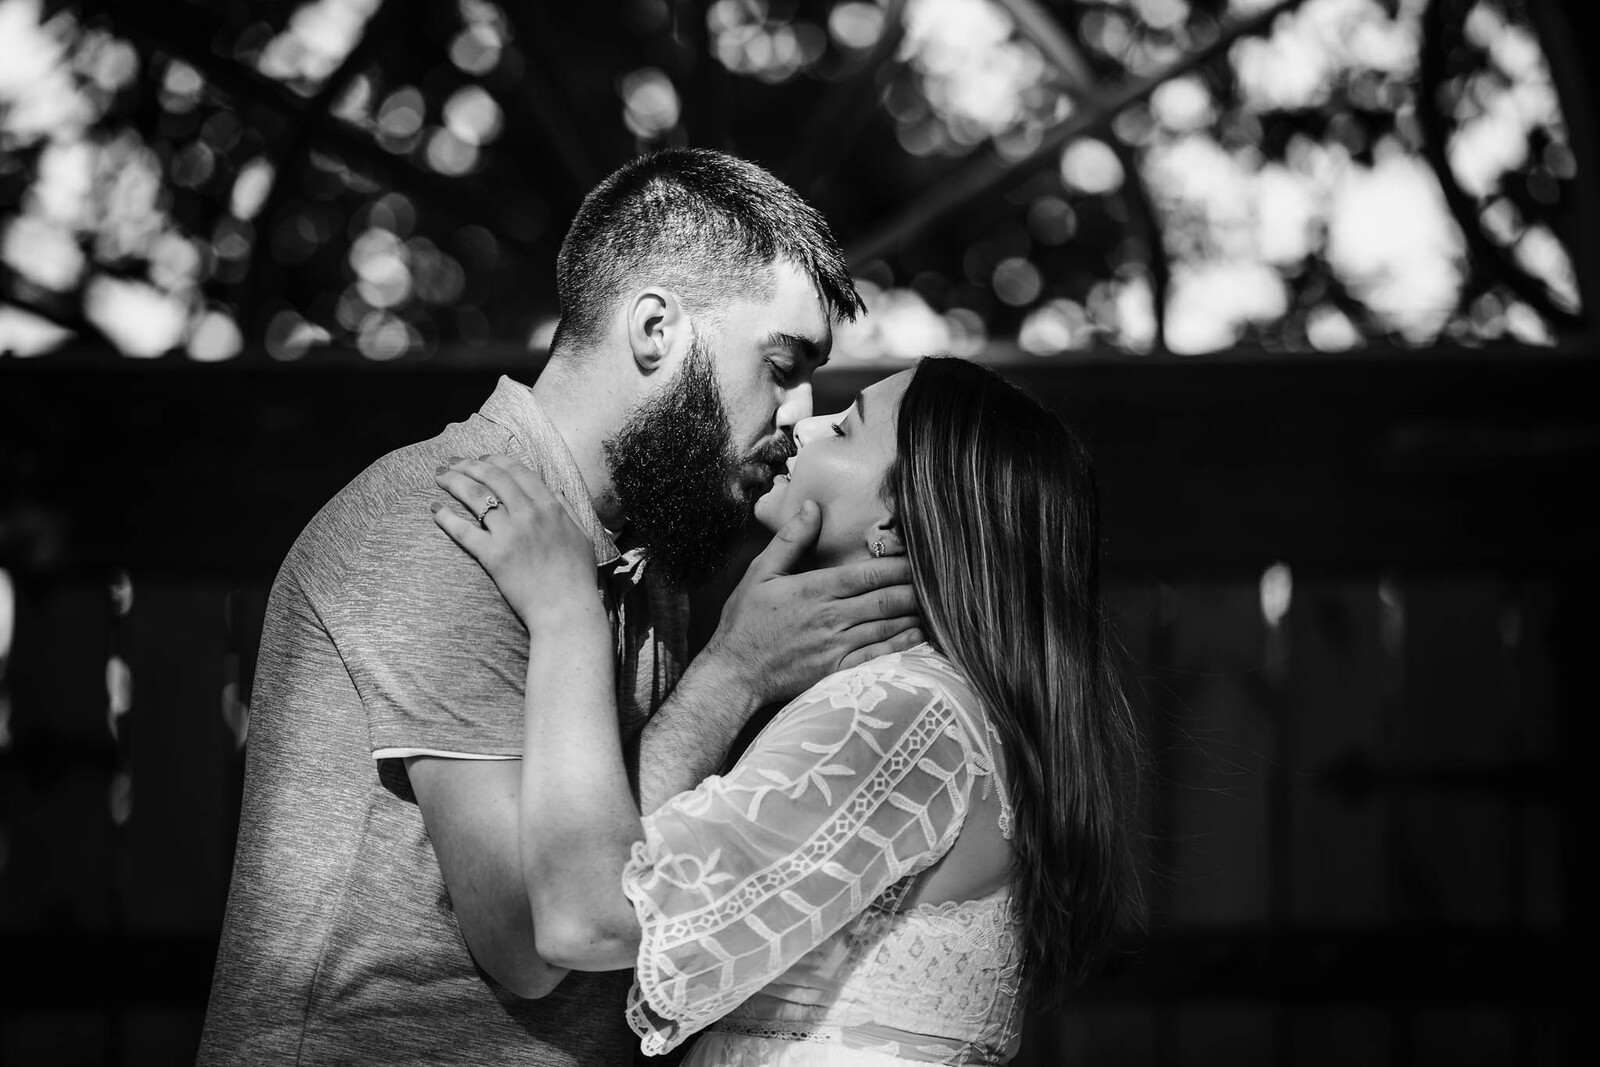 Black and white photo of engaged couple embracing and kissing